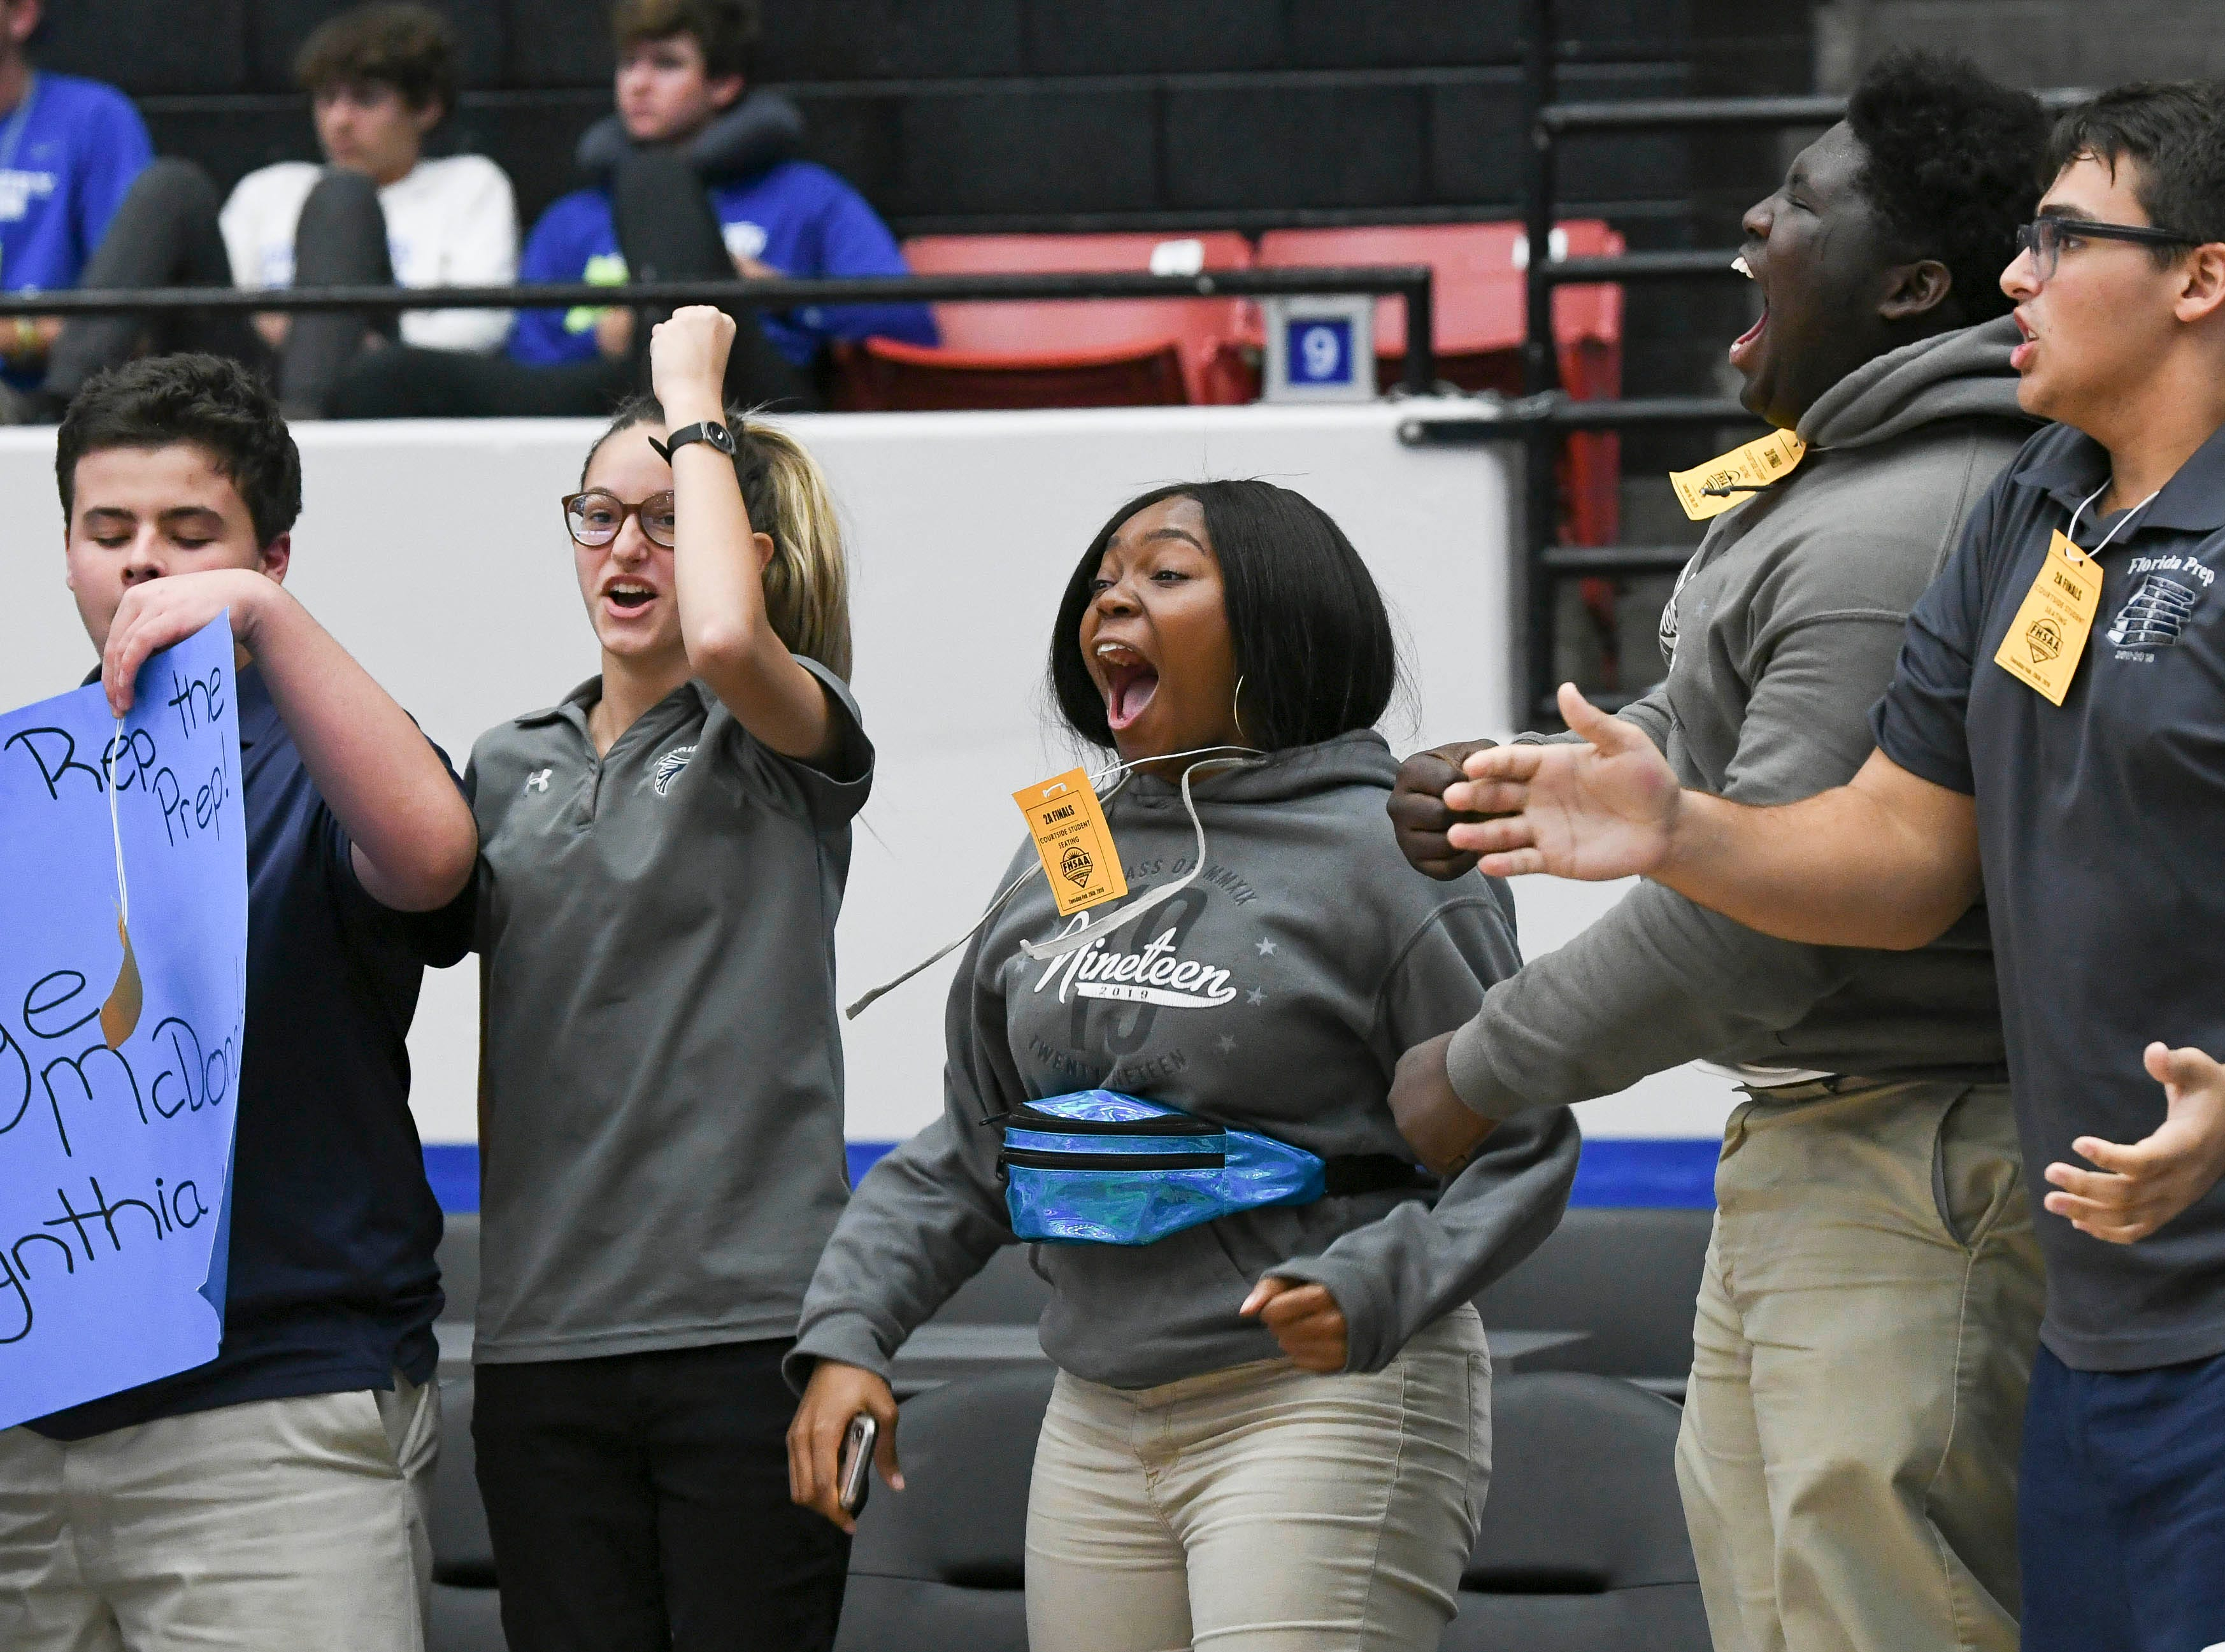 Florida Prep fans cheer for the Lady Falcons during Tuesday's Class 2A state championship game.